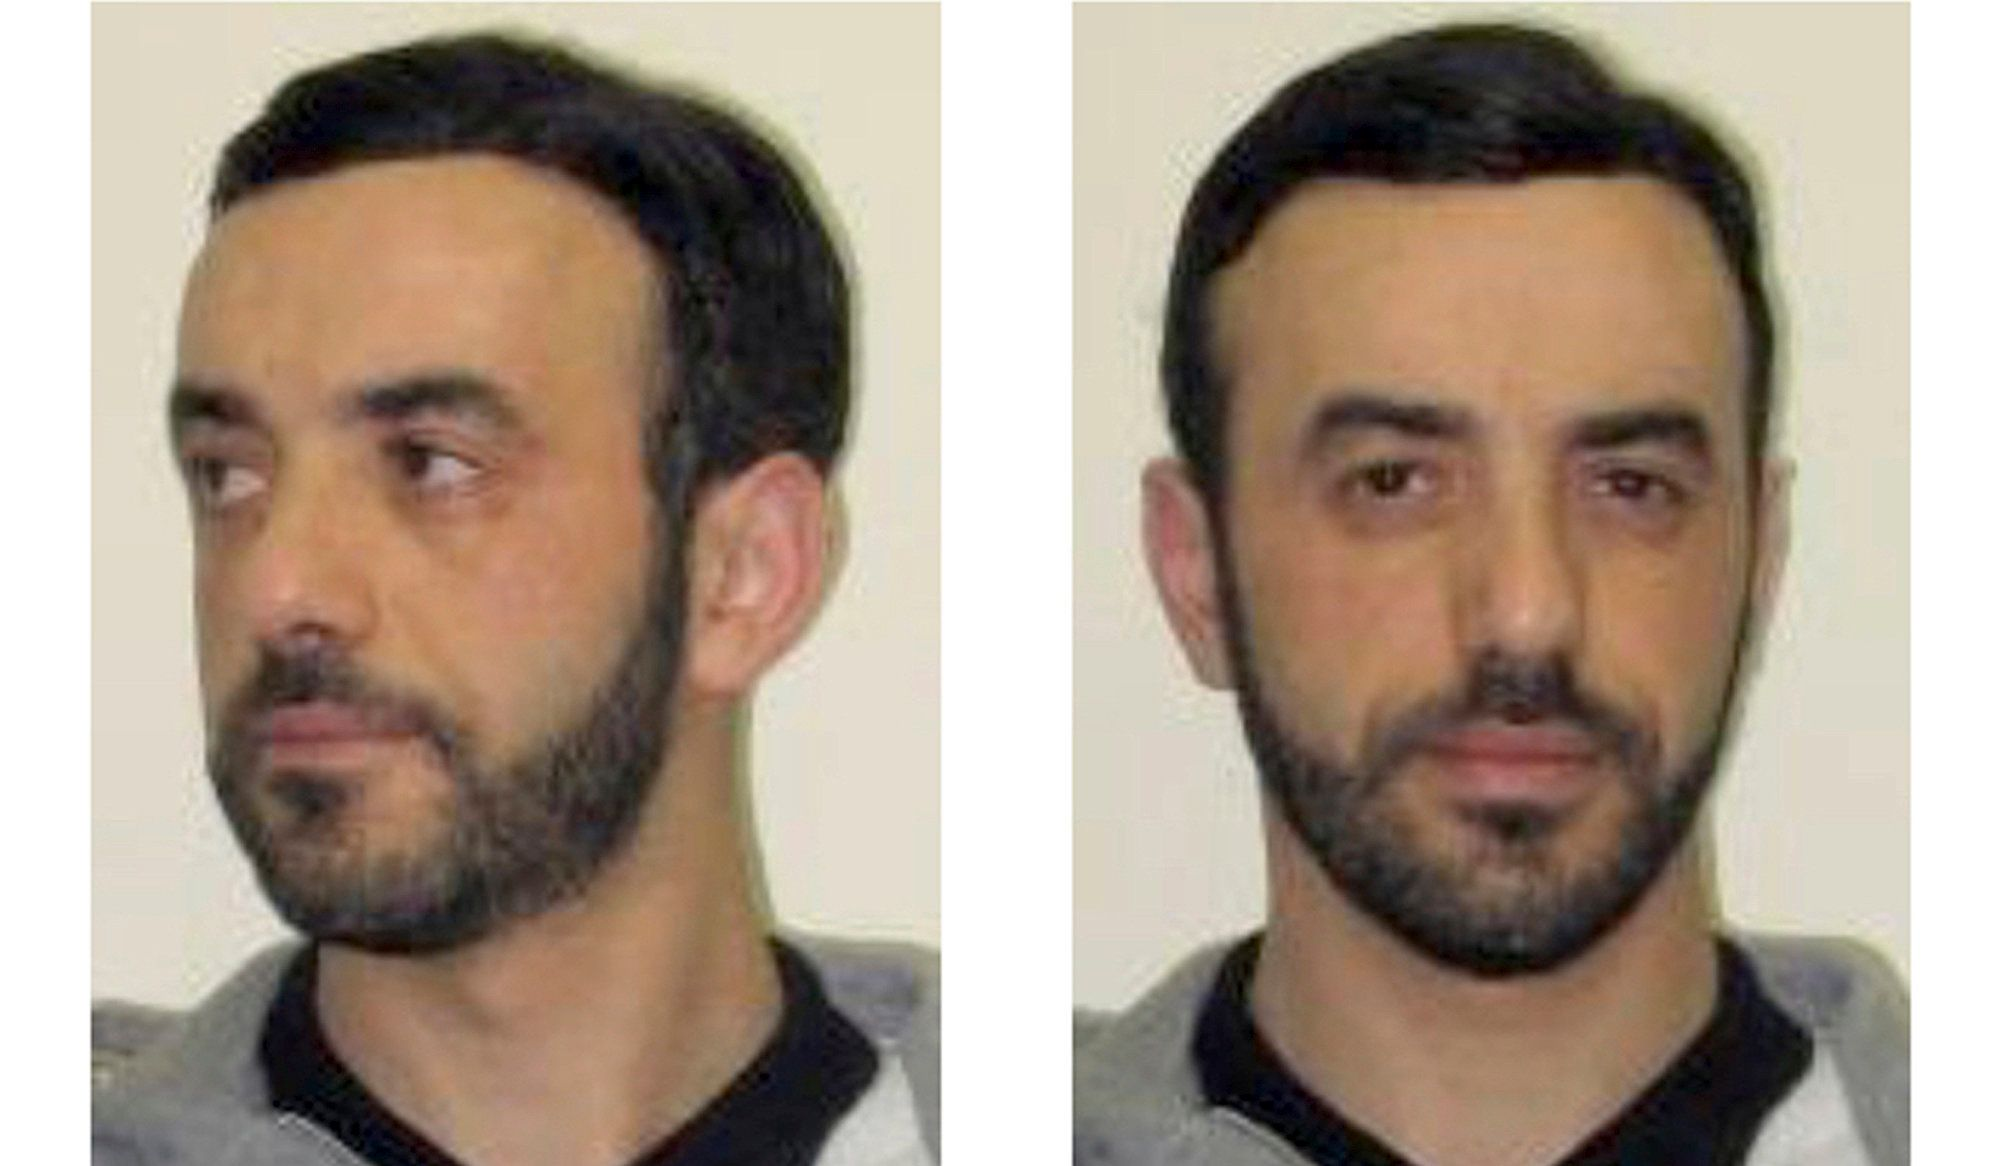 Notorious French criminal, Redoine Faid, was arrested on Wednesday after three months on the run.